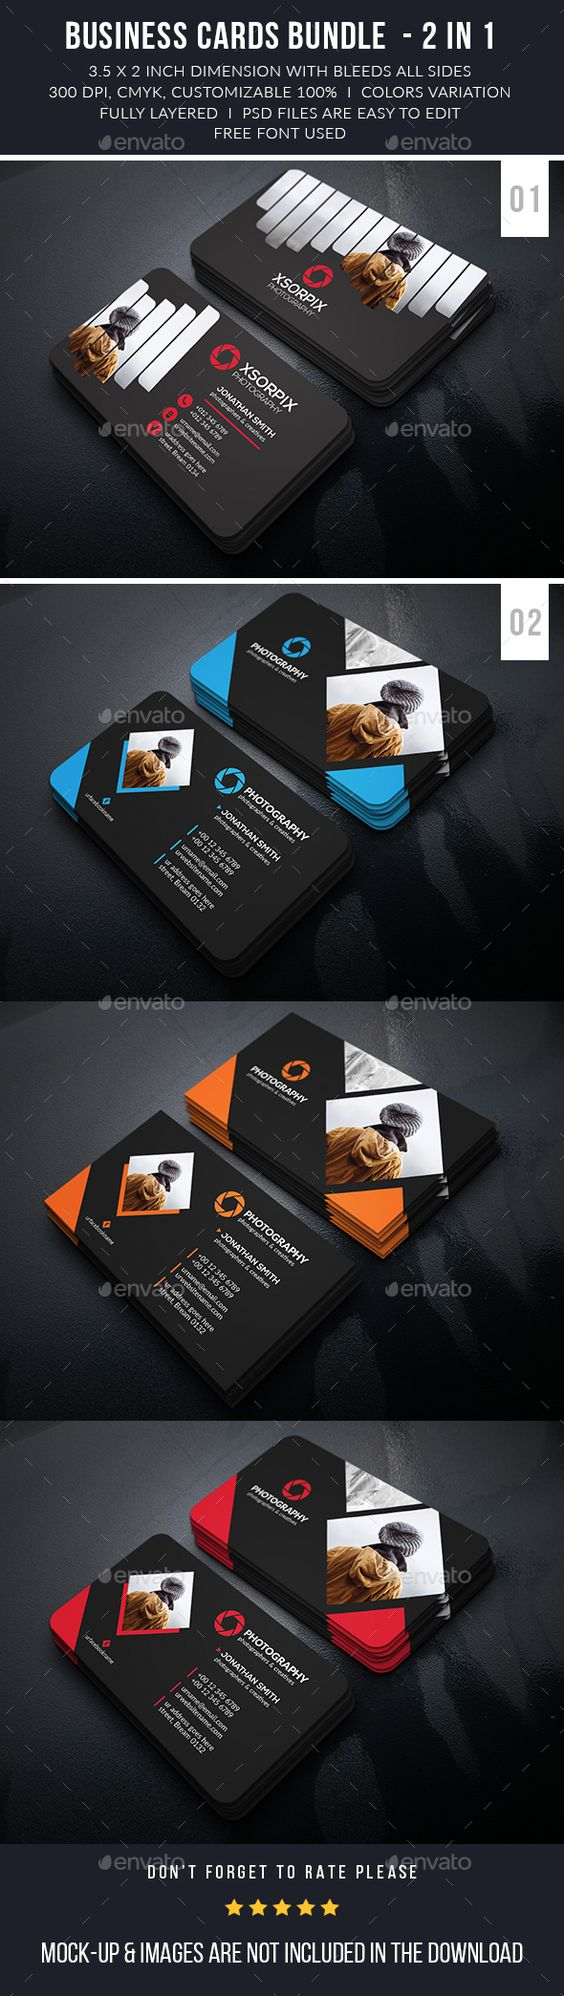 Photography Business Cards Bundle